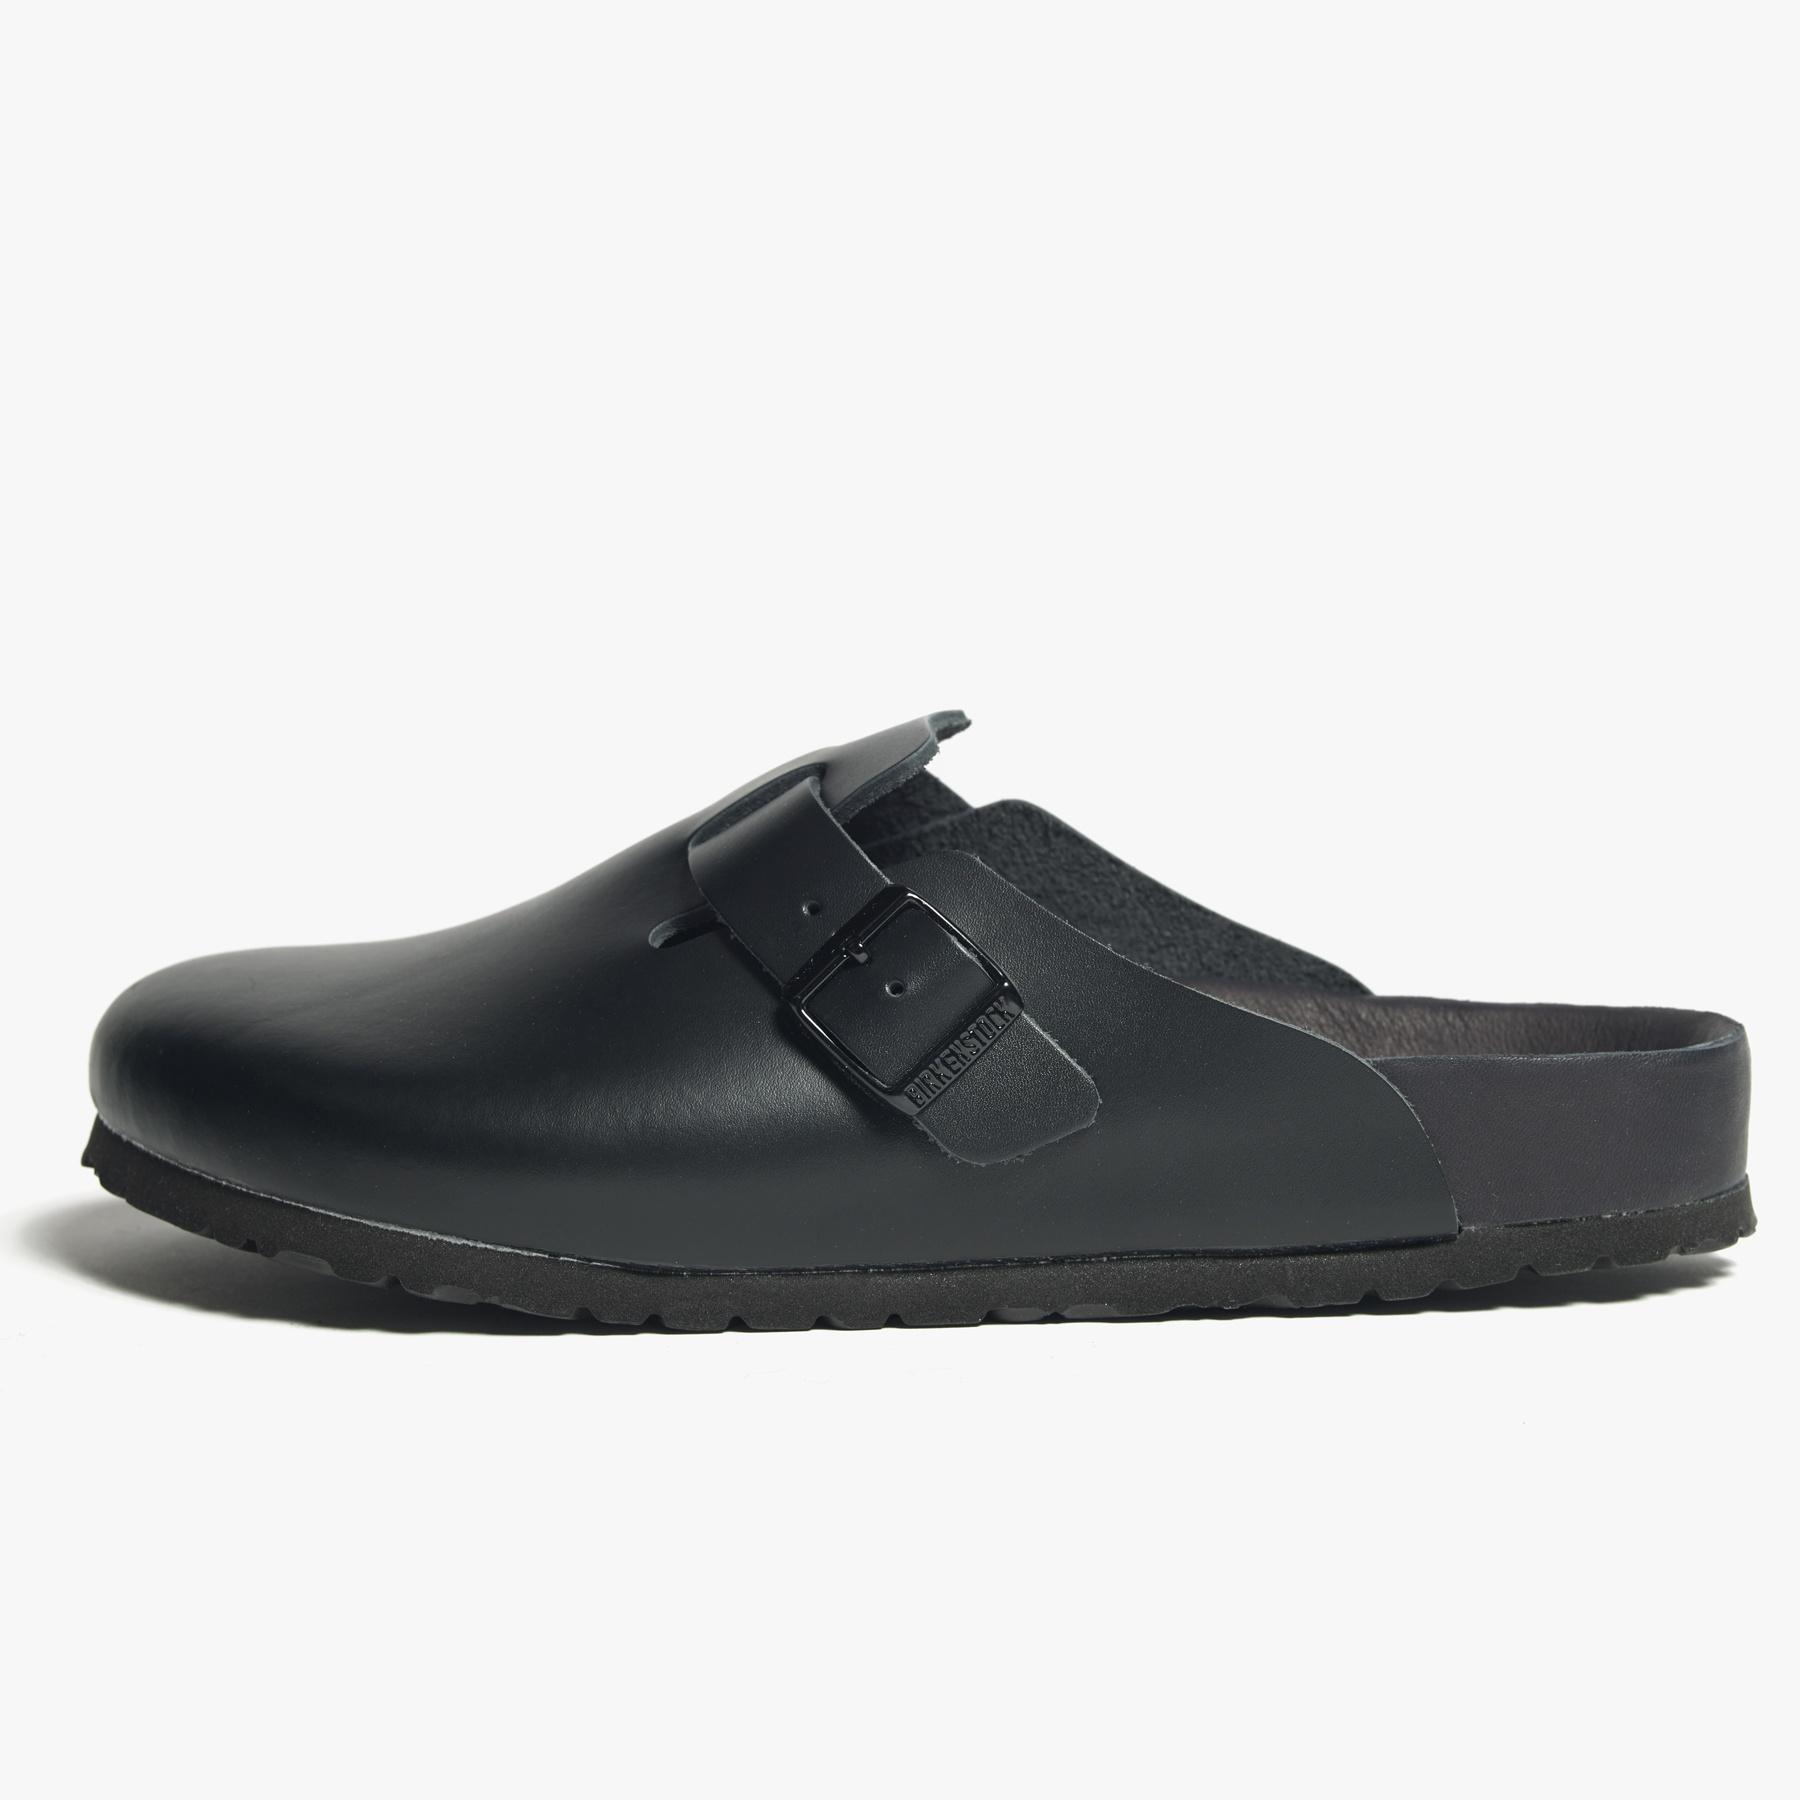 03101c5f9f Lyst - James Perse Birkenstock Boston Leather Clog - Mens in Black ...